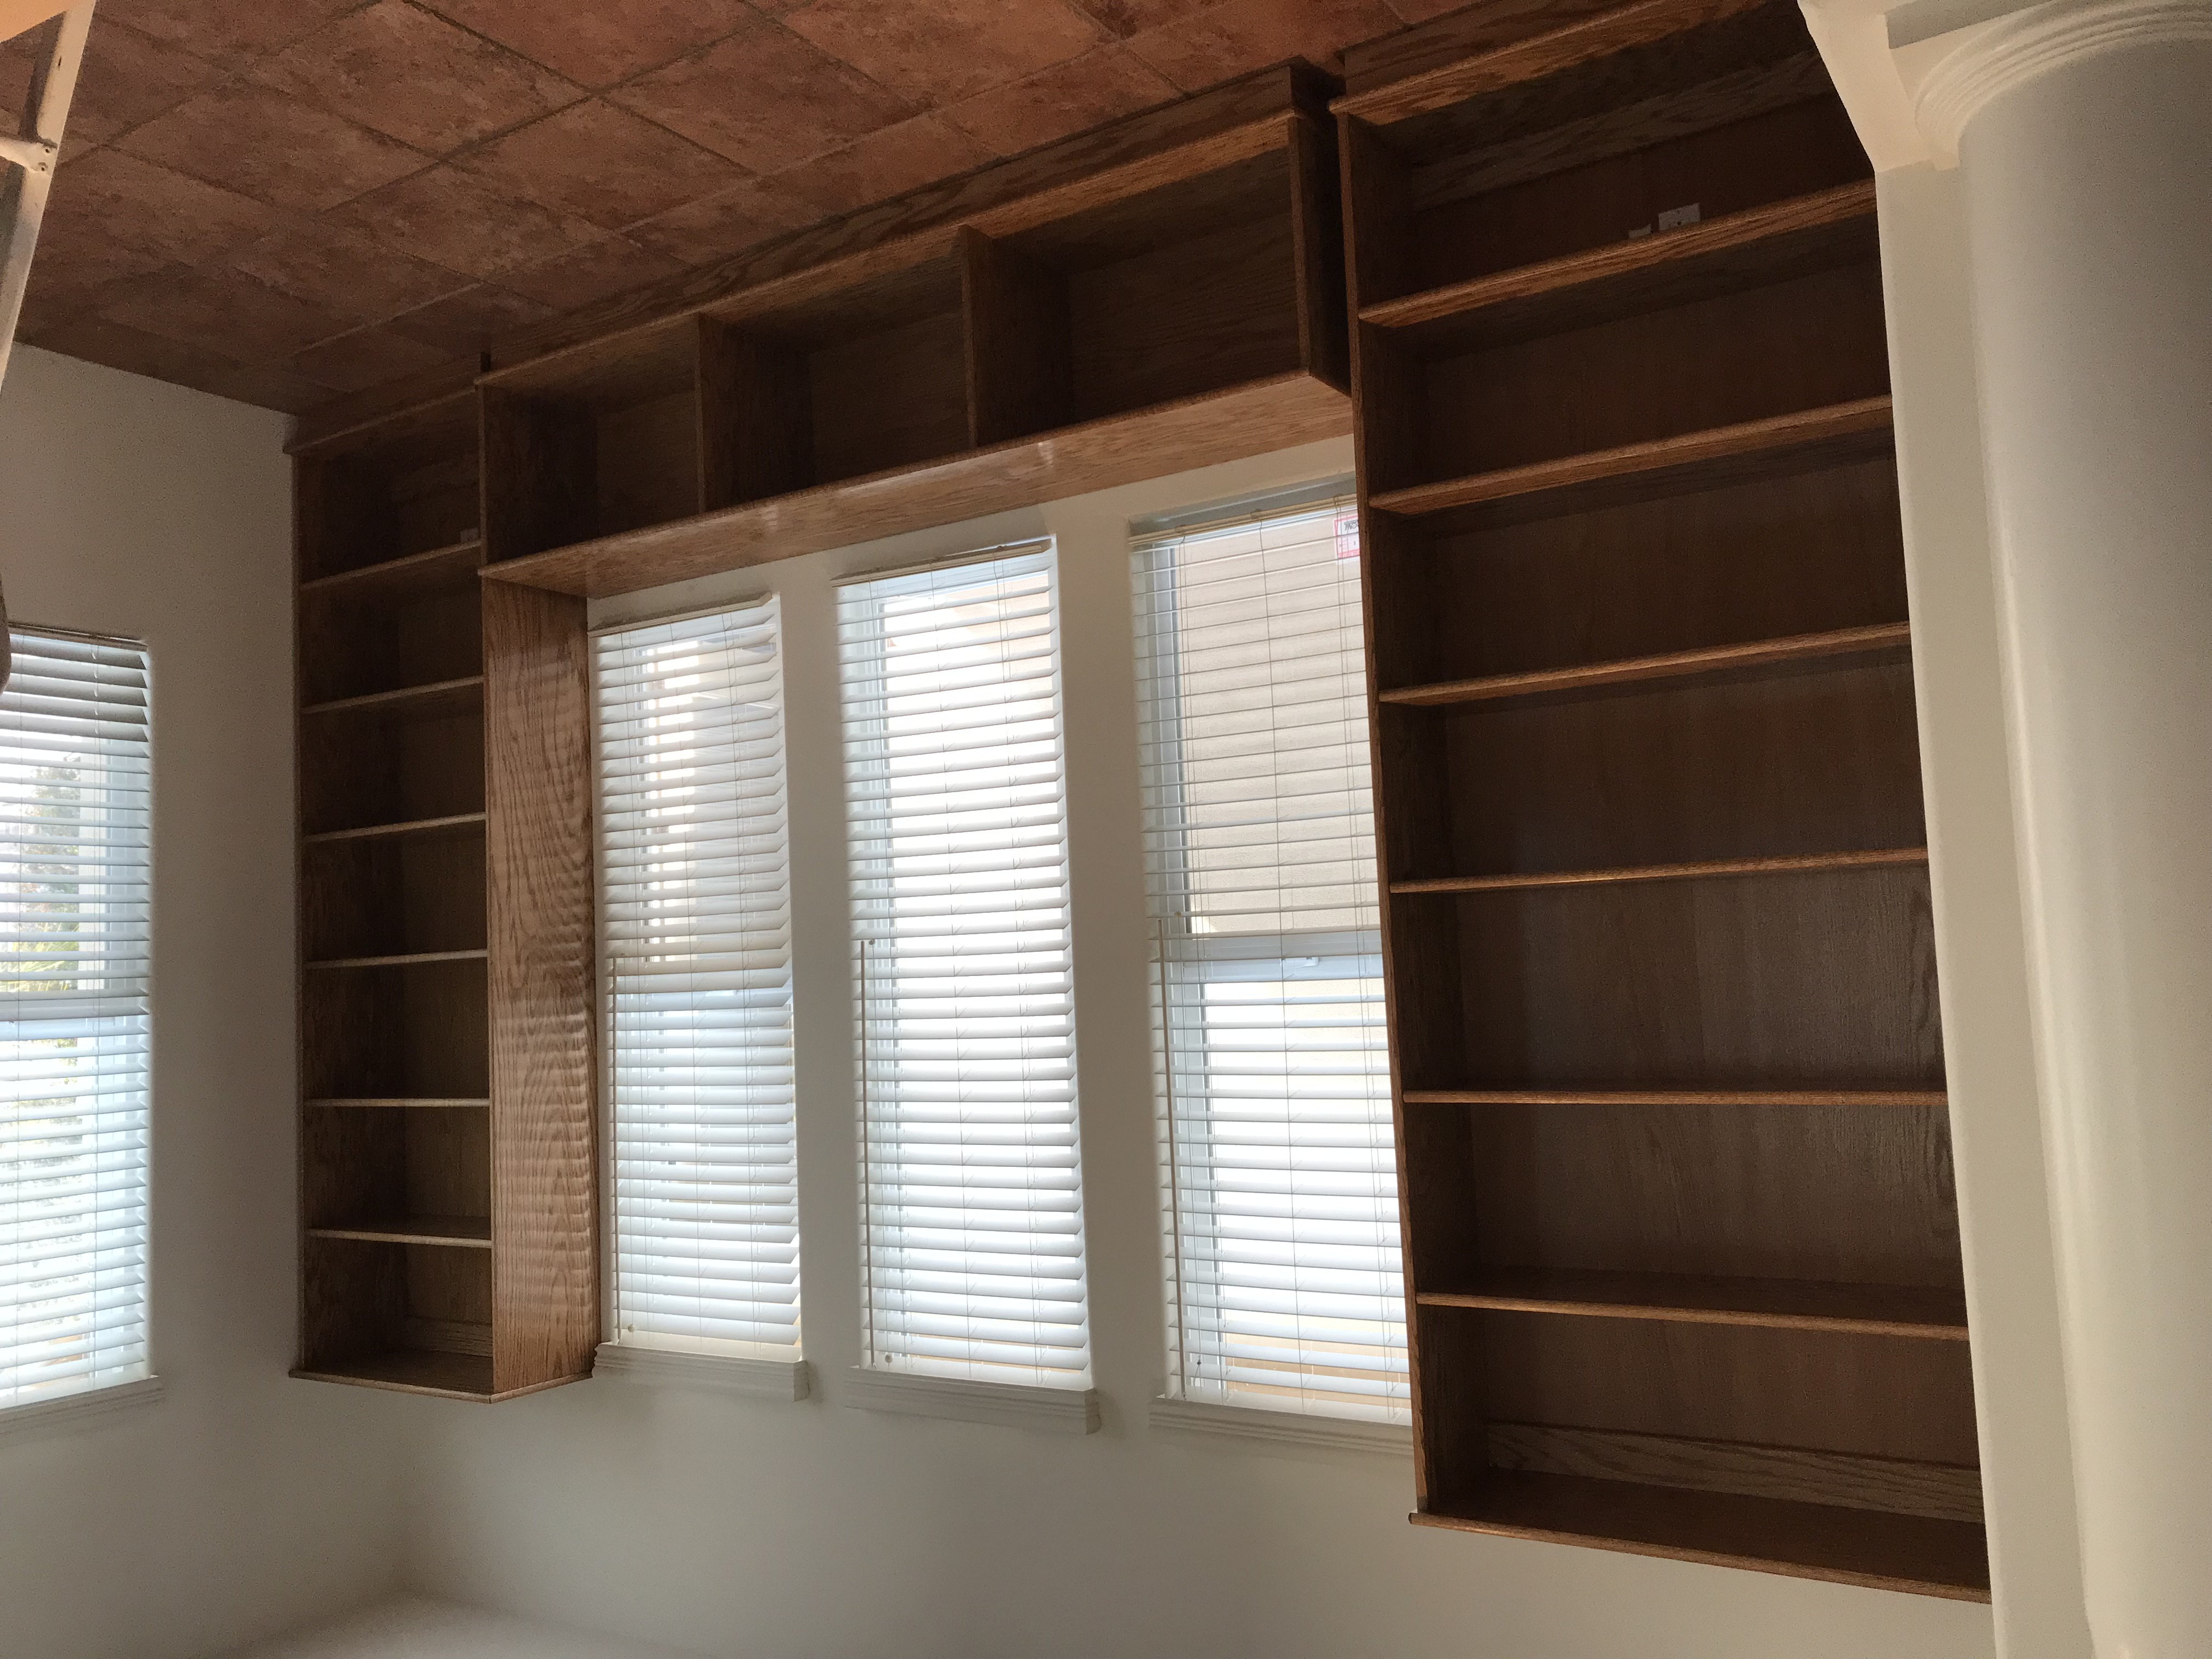 Eight foot high bookcases and LP lowboy in Minwax Golden Oak stain.